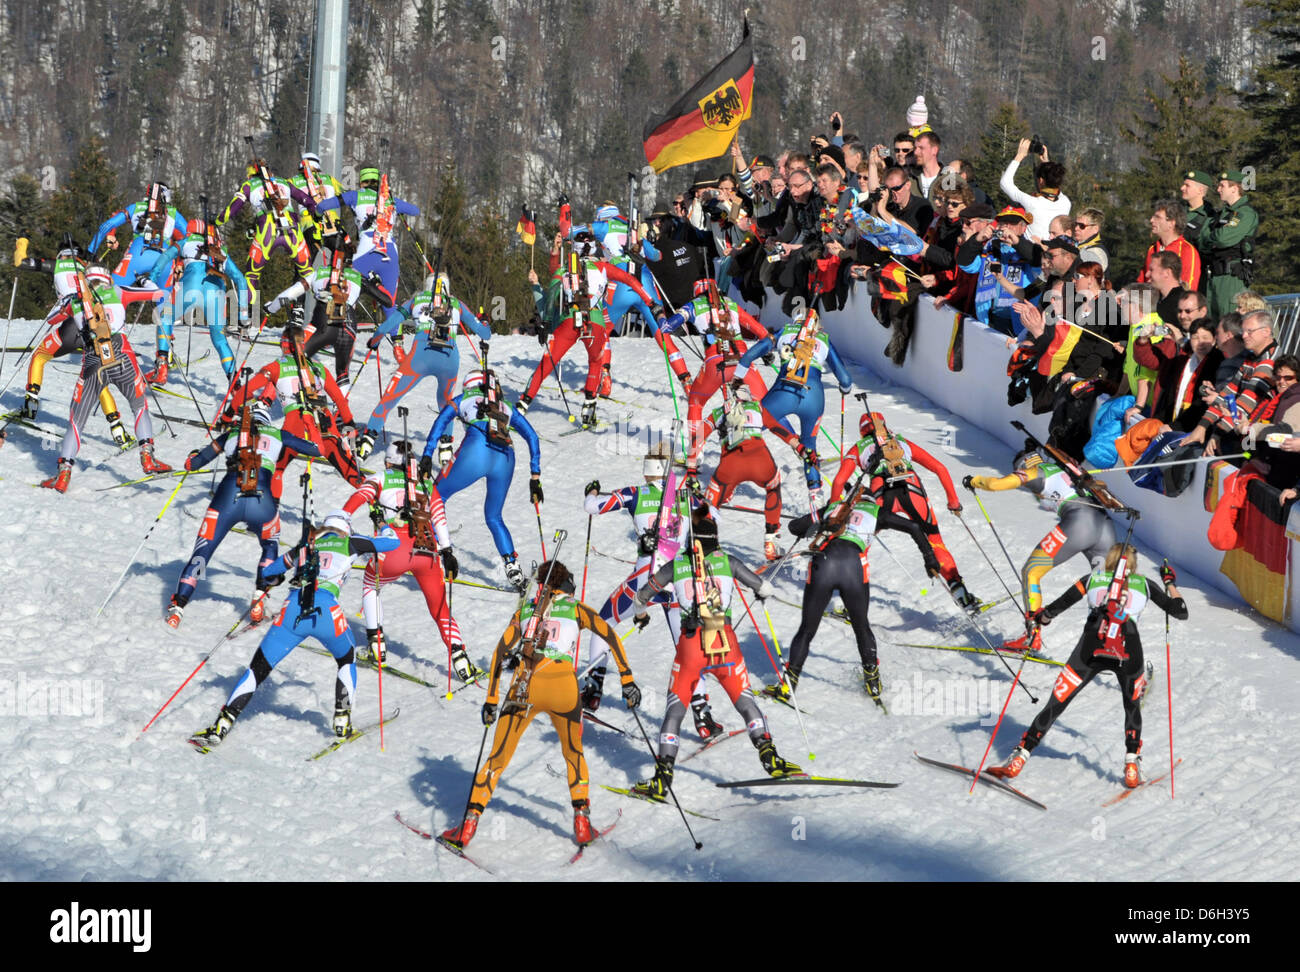 The female biathletes start in the mixed relay event of the Biathlon world championships 2012 at the Chiemgau Arena - Stock Image